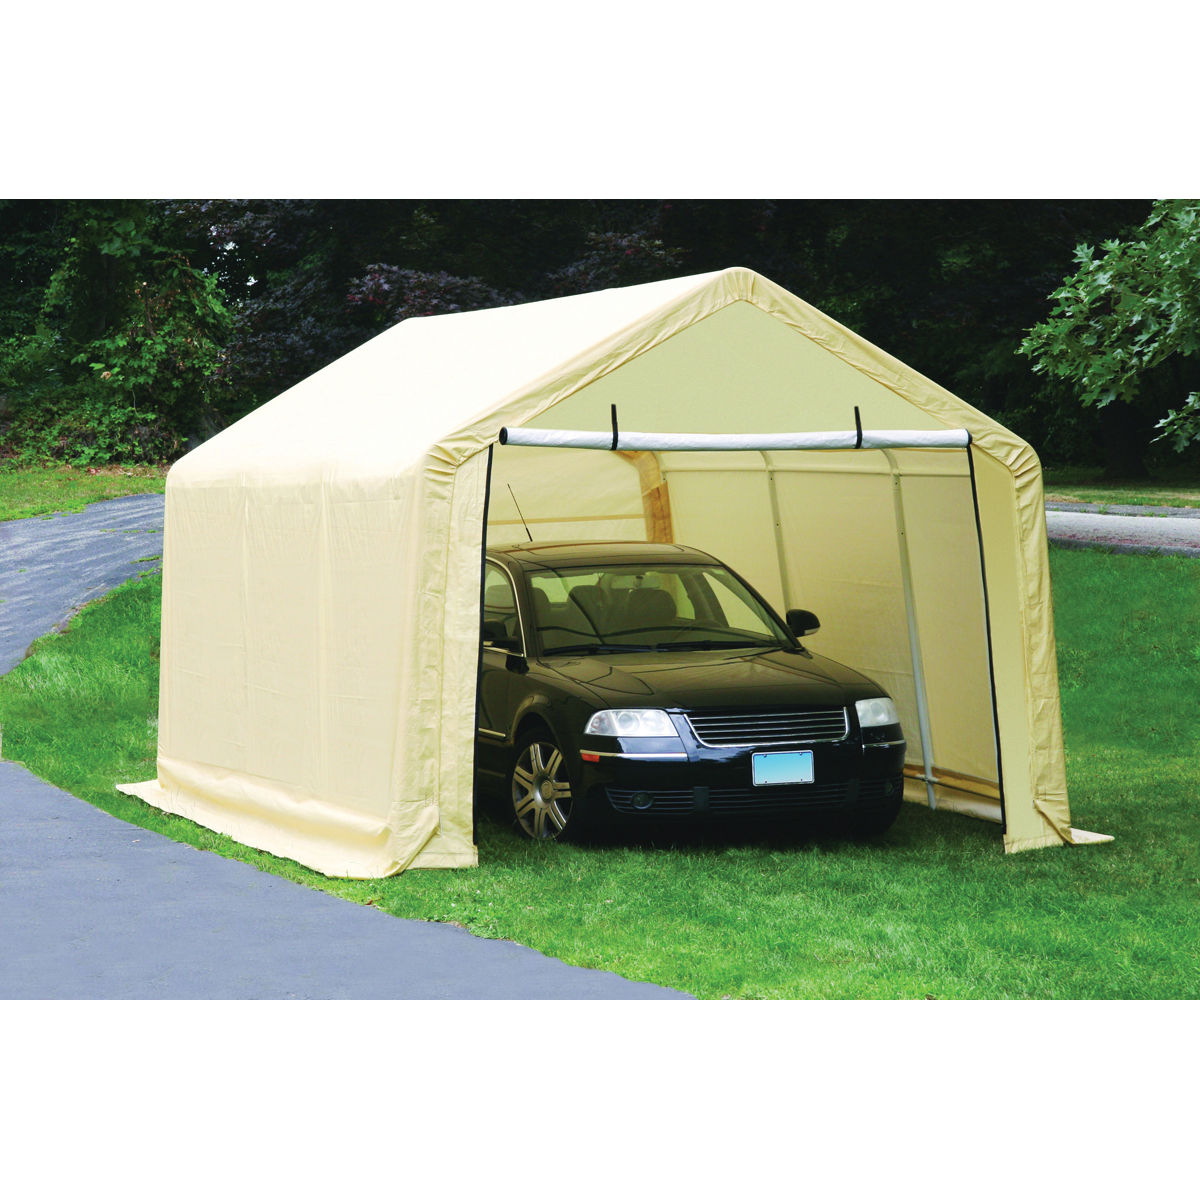 portable carport portable garage LBAVUBR